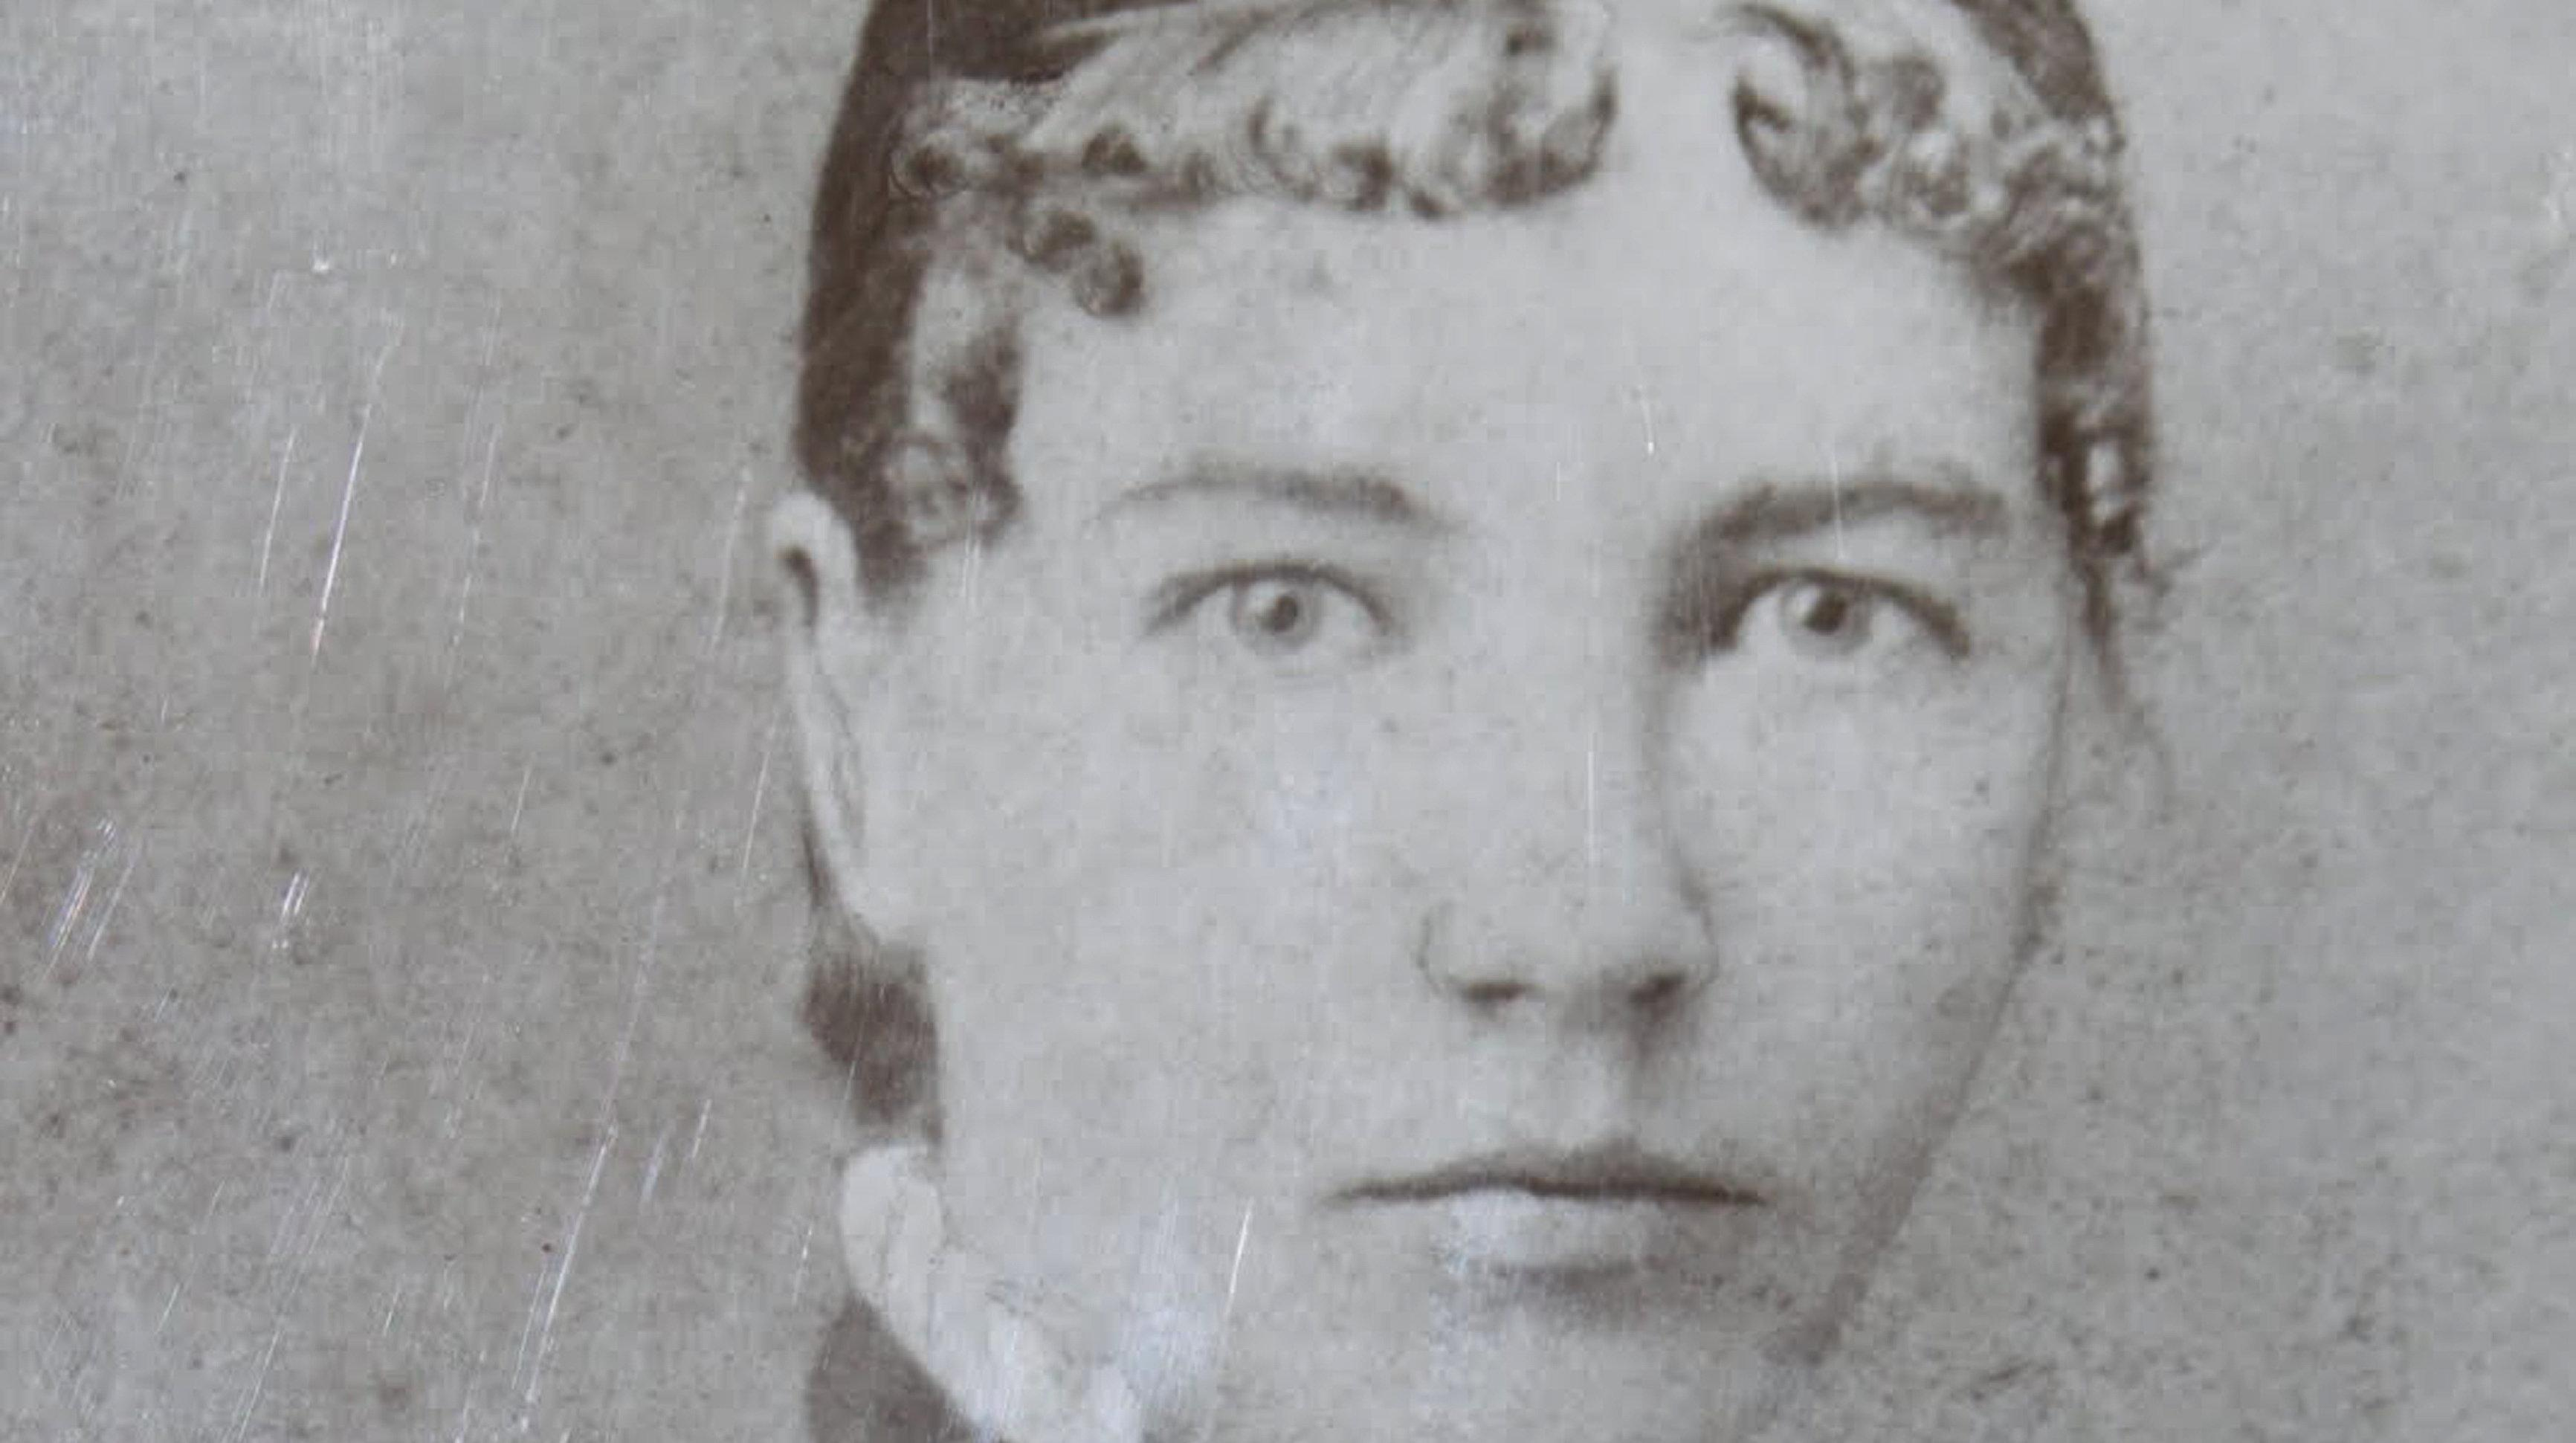 Laura Ingalls Wilder's Name Cut From Award For Her 'Stereotypical' Depictions